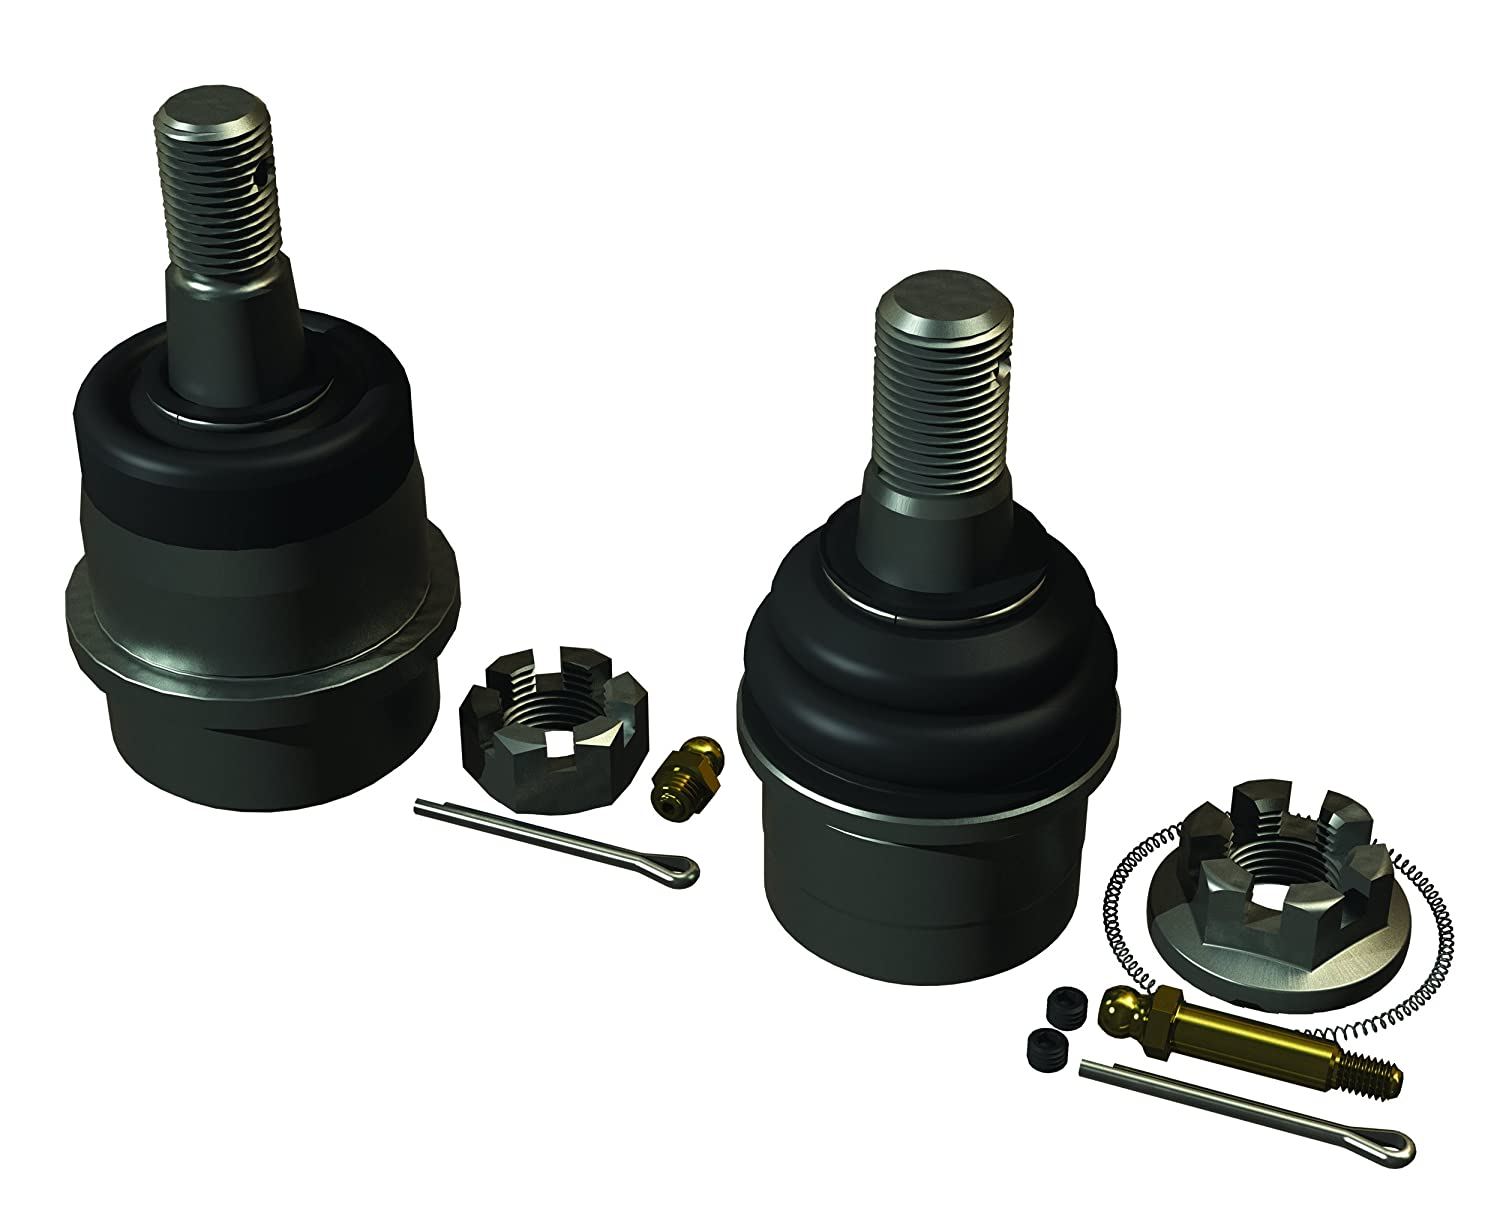 4. Teraflex 3440000 Ball Joint Set